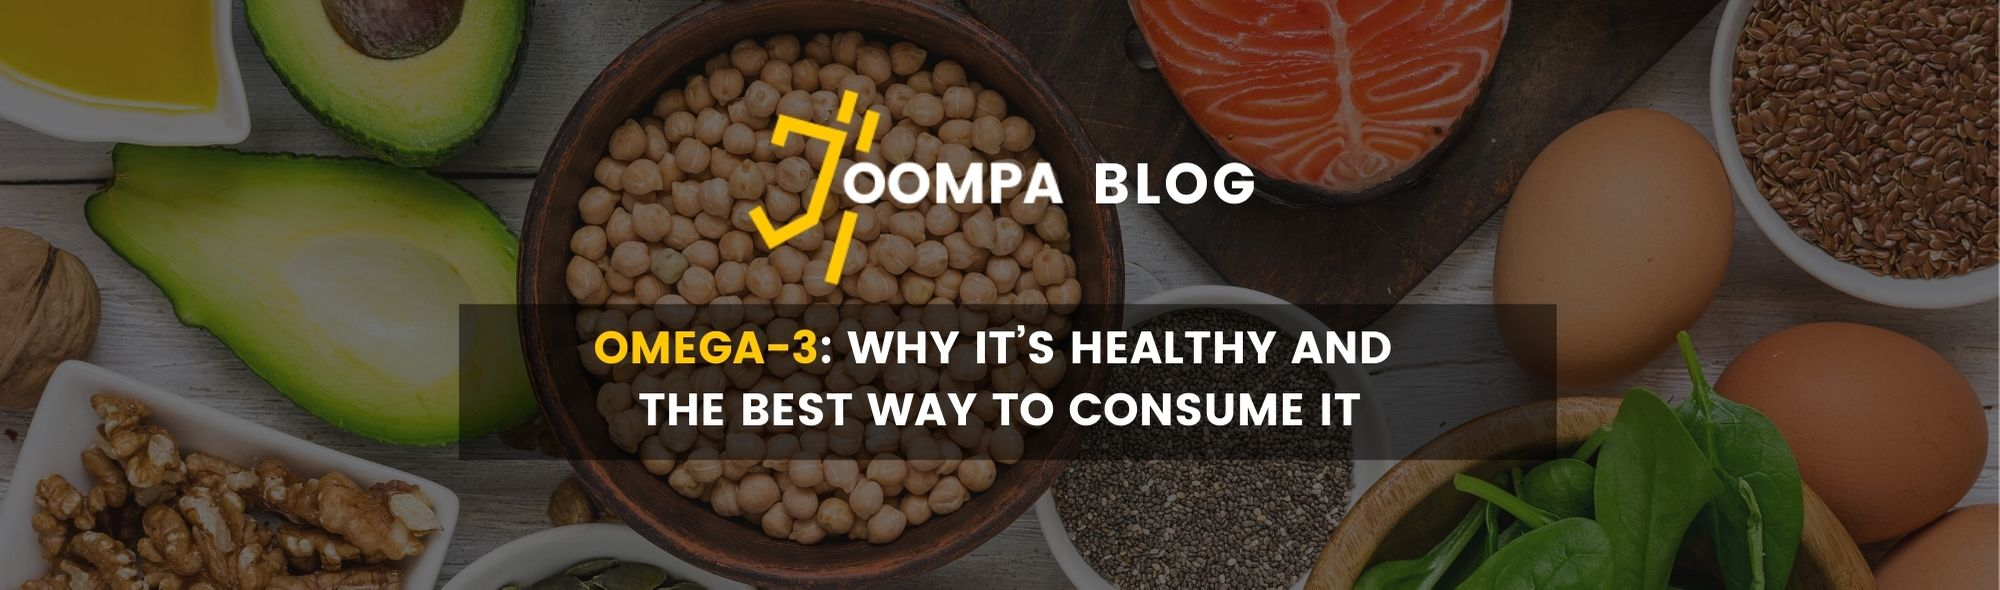 Omega-3: Why It's Healthy and The Best Way To Consume It